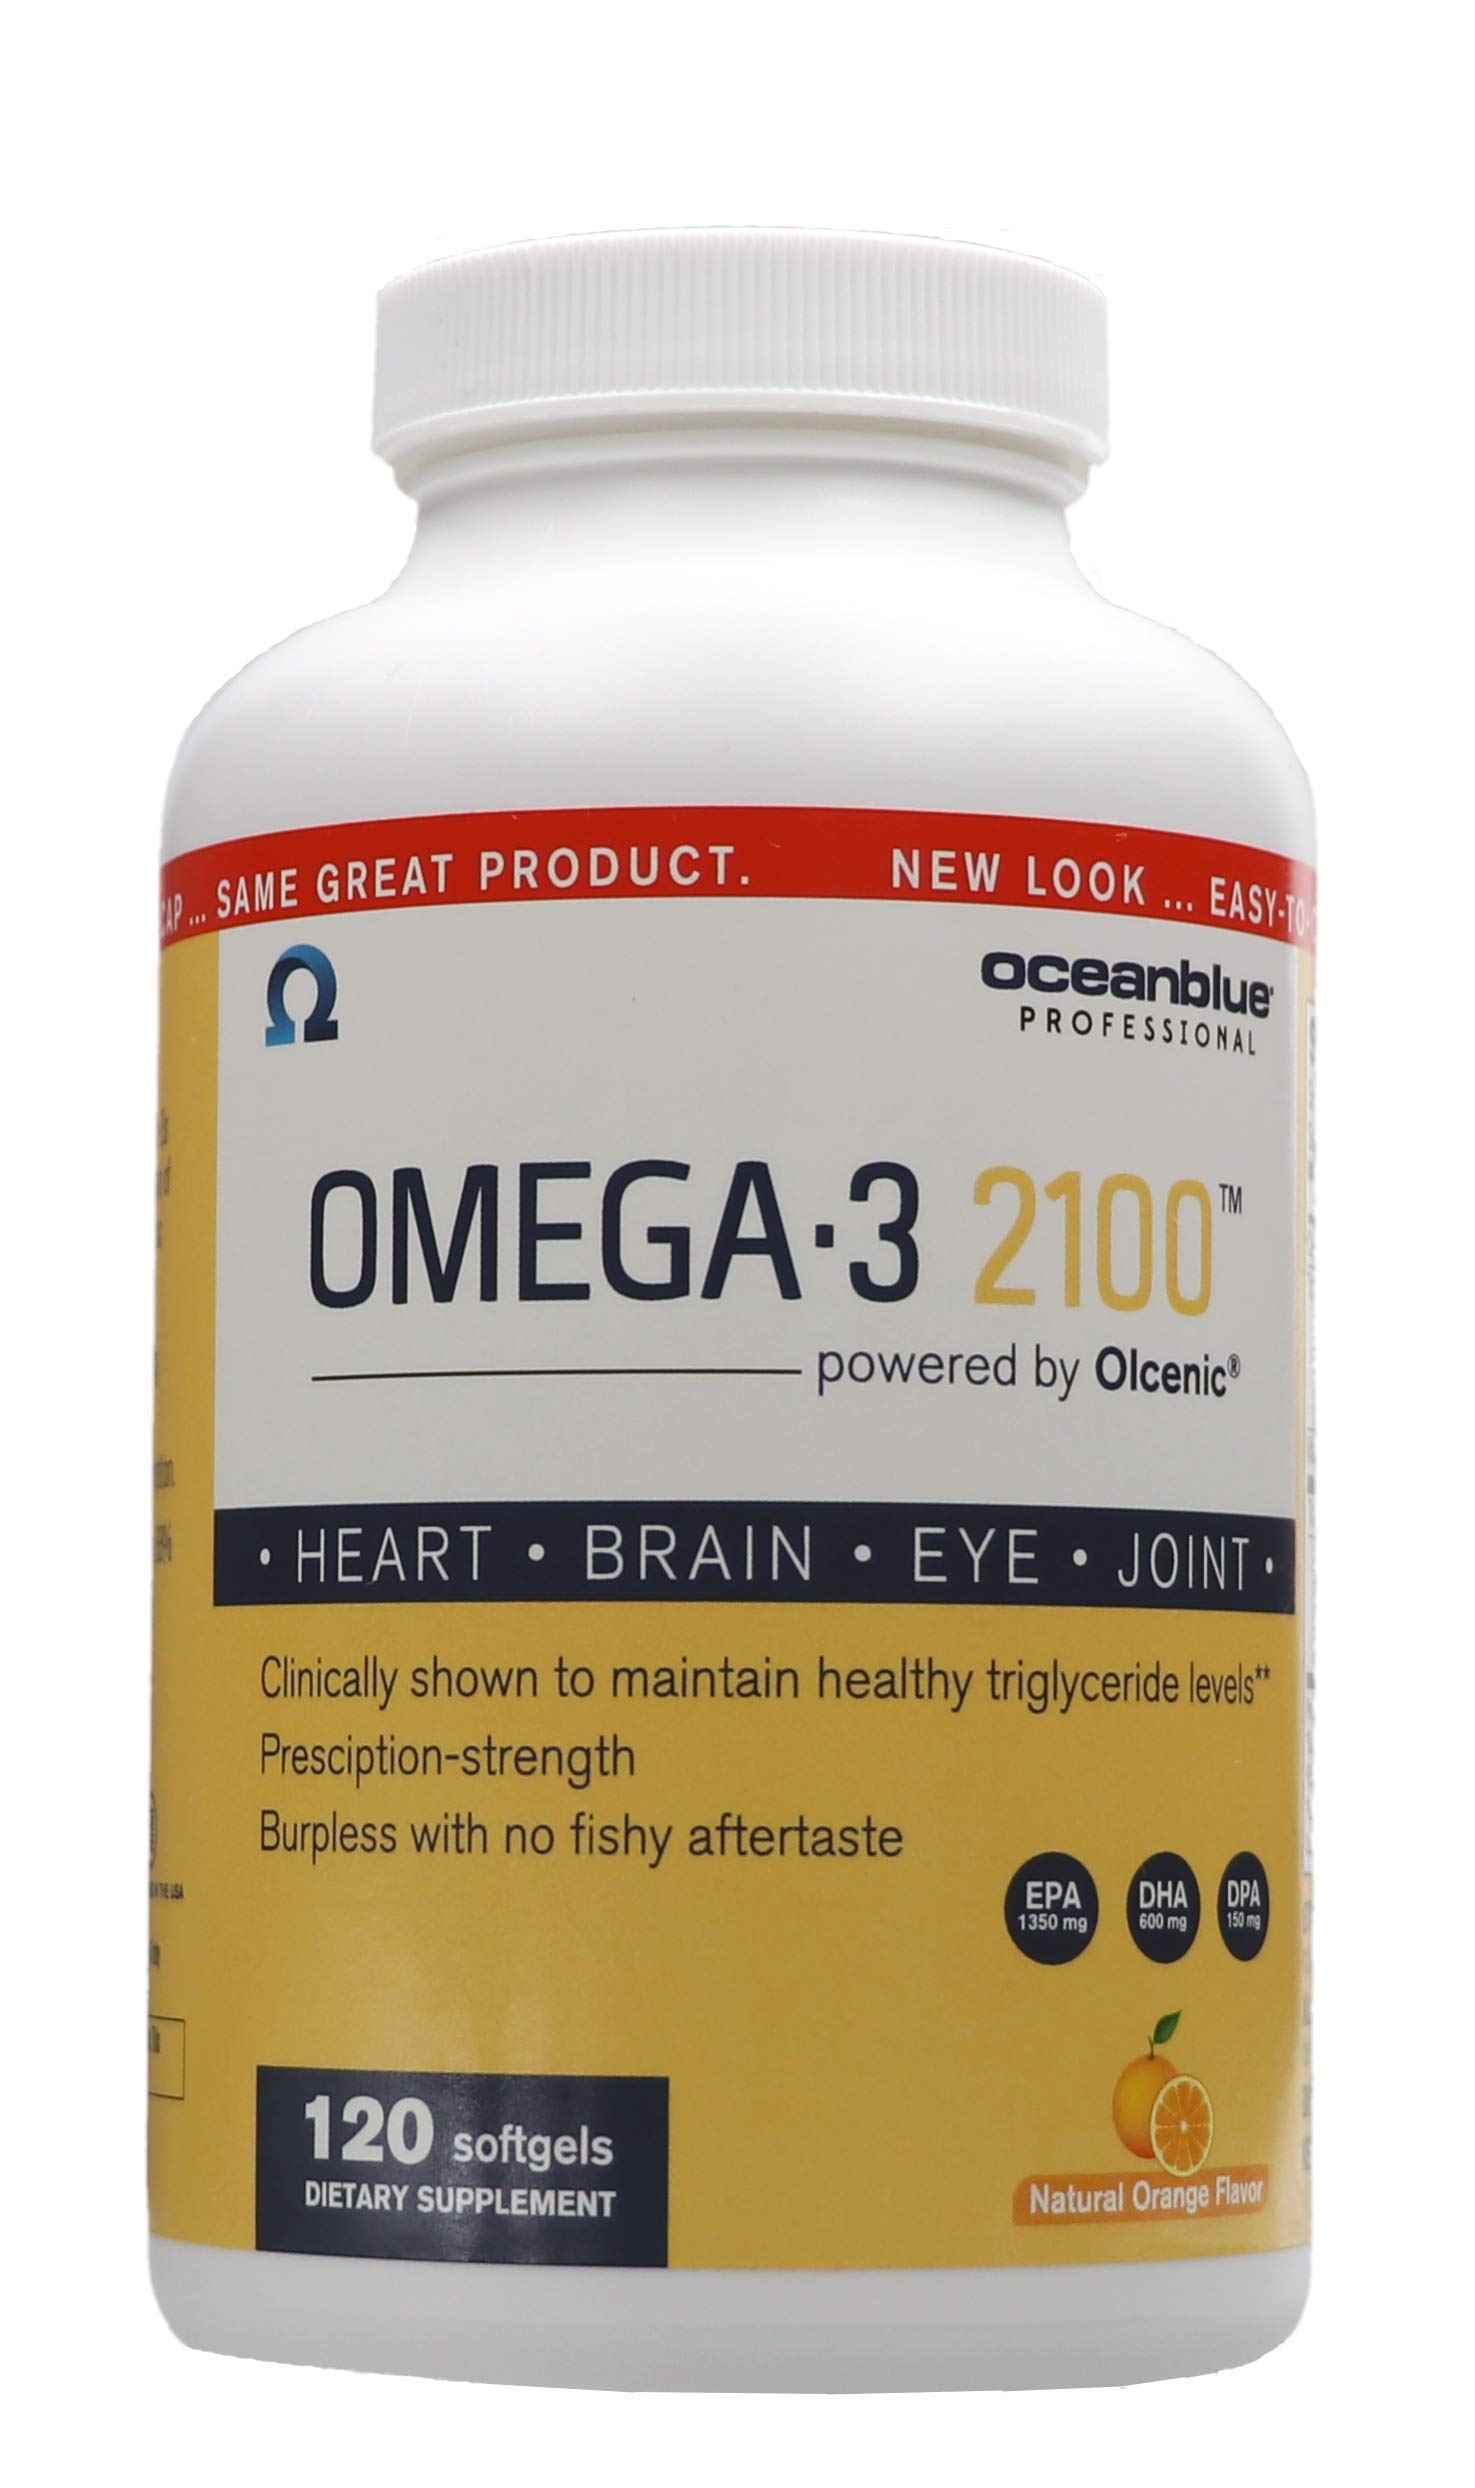 Ocean Blue Omega 3 2100 - Olcenic Blend - 120 Count - Natural Orange Flavor - no Fishy Aftertaste - Heart Health - Cholesterol - Eye and Brain Support - Natural Flavor - Indigestion or Burps by Ocean blue